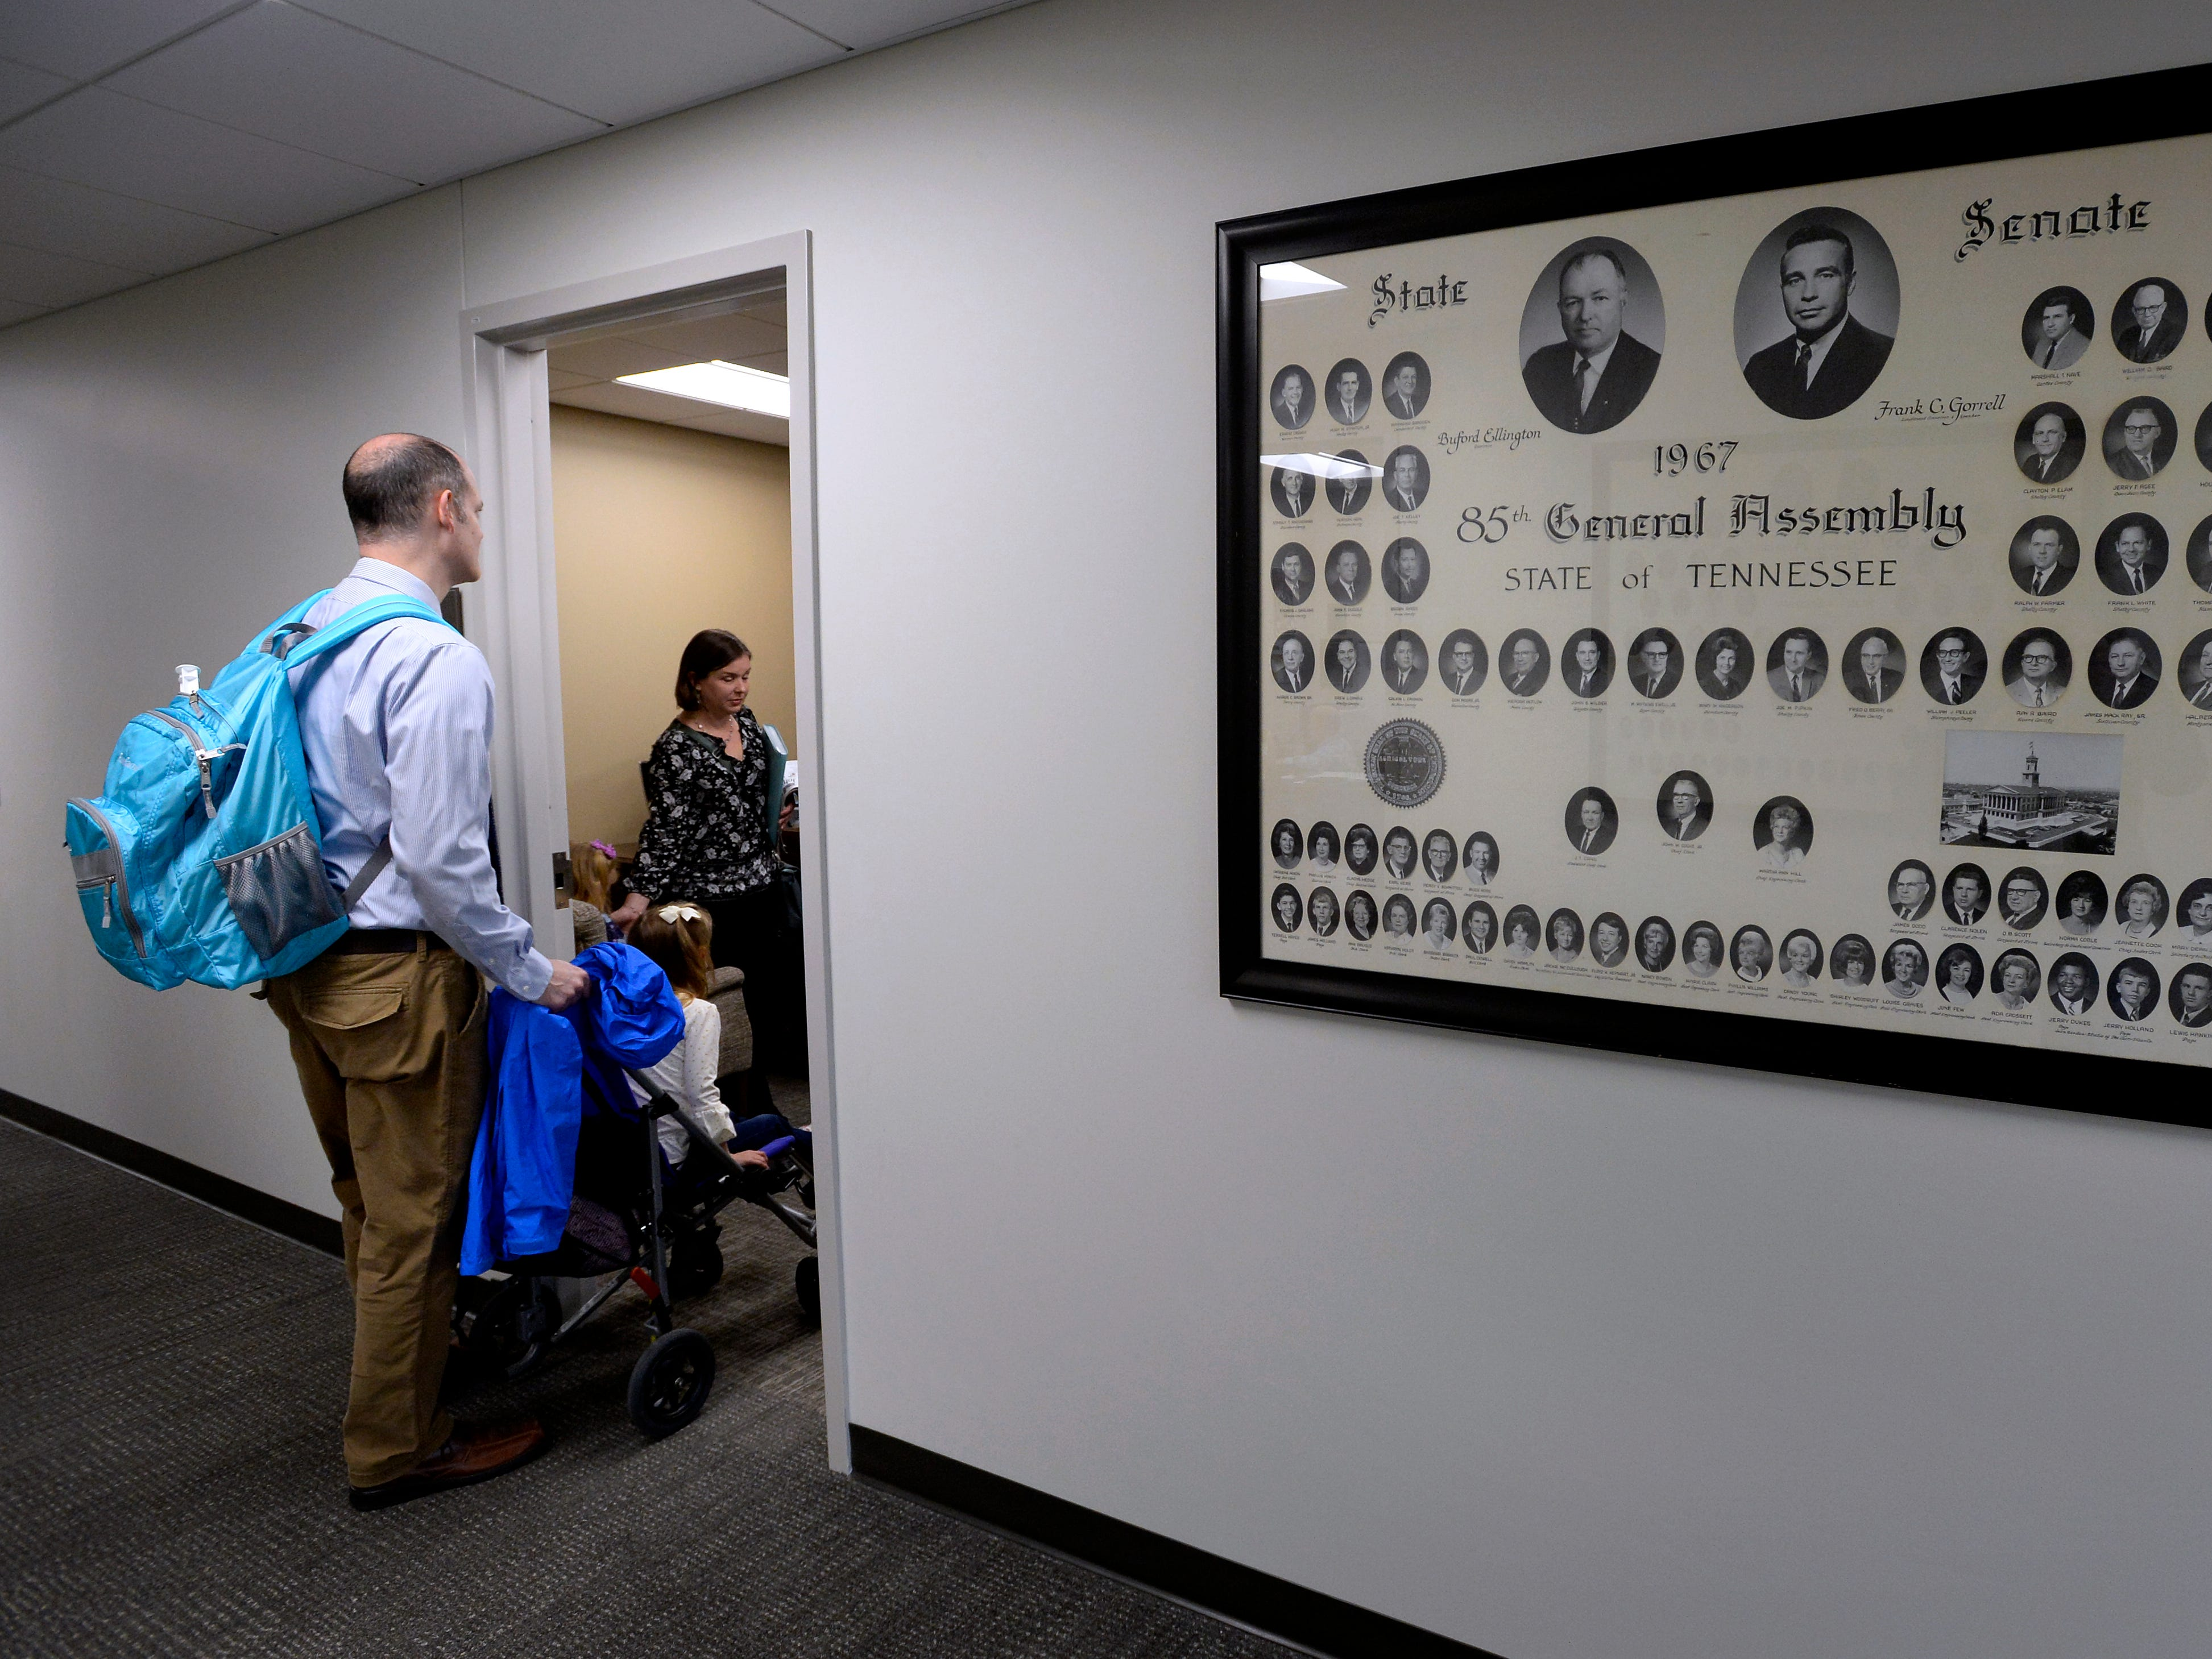 Sean, Claire, 4, and Jessica Fox enter the office of Tennessee State Senator Becky Duncan Massy, R-Knoxville, before talking with her during Disability Day on the Hill Tuesday, Feb. 12, 2019, in Nashville, Tenn. Families and advocates of people with disabilities in Tennessee met with lawmakers to express concerns and the needs of the disabled in the state.